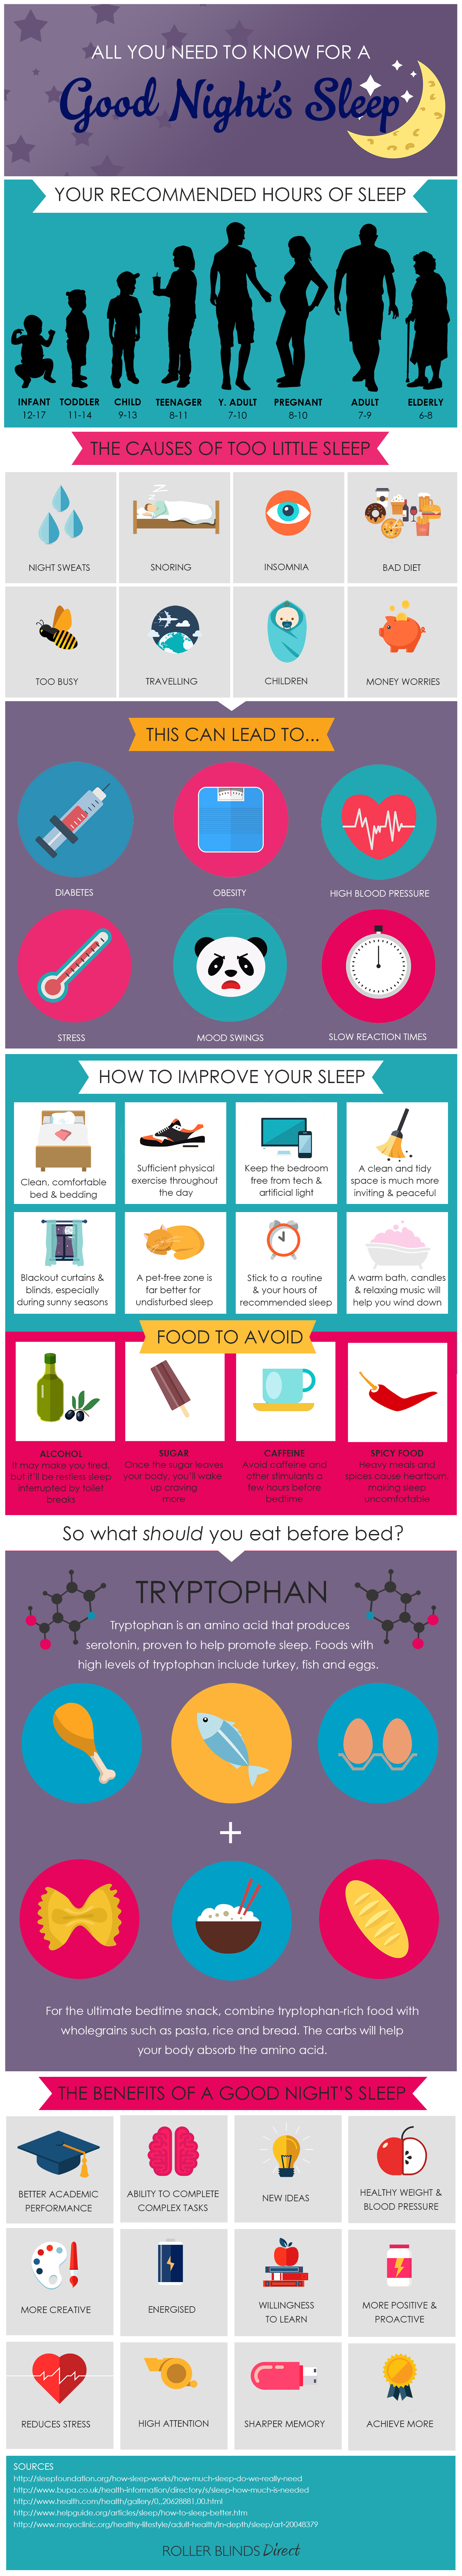 All You Need To Know For A Good Night's Sleep